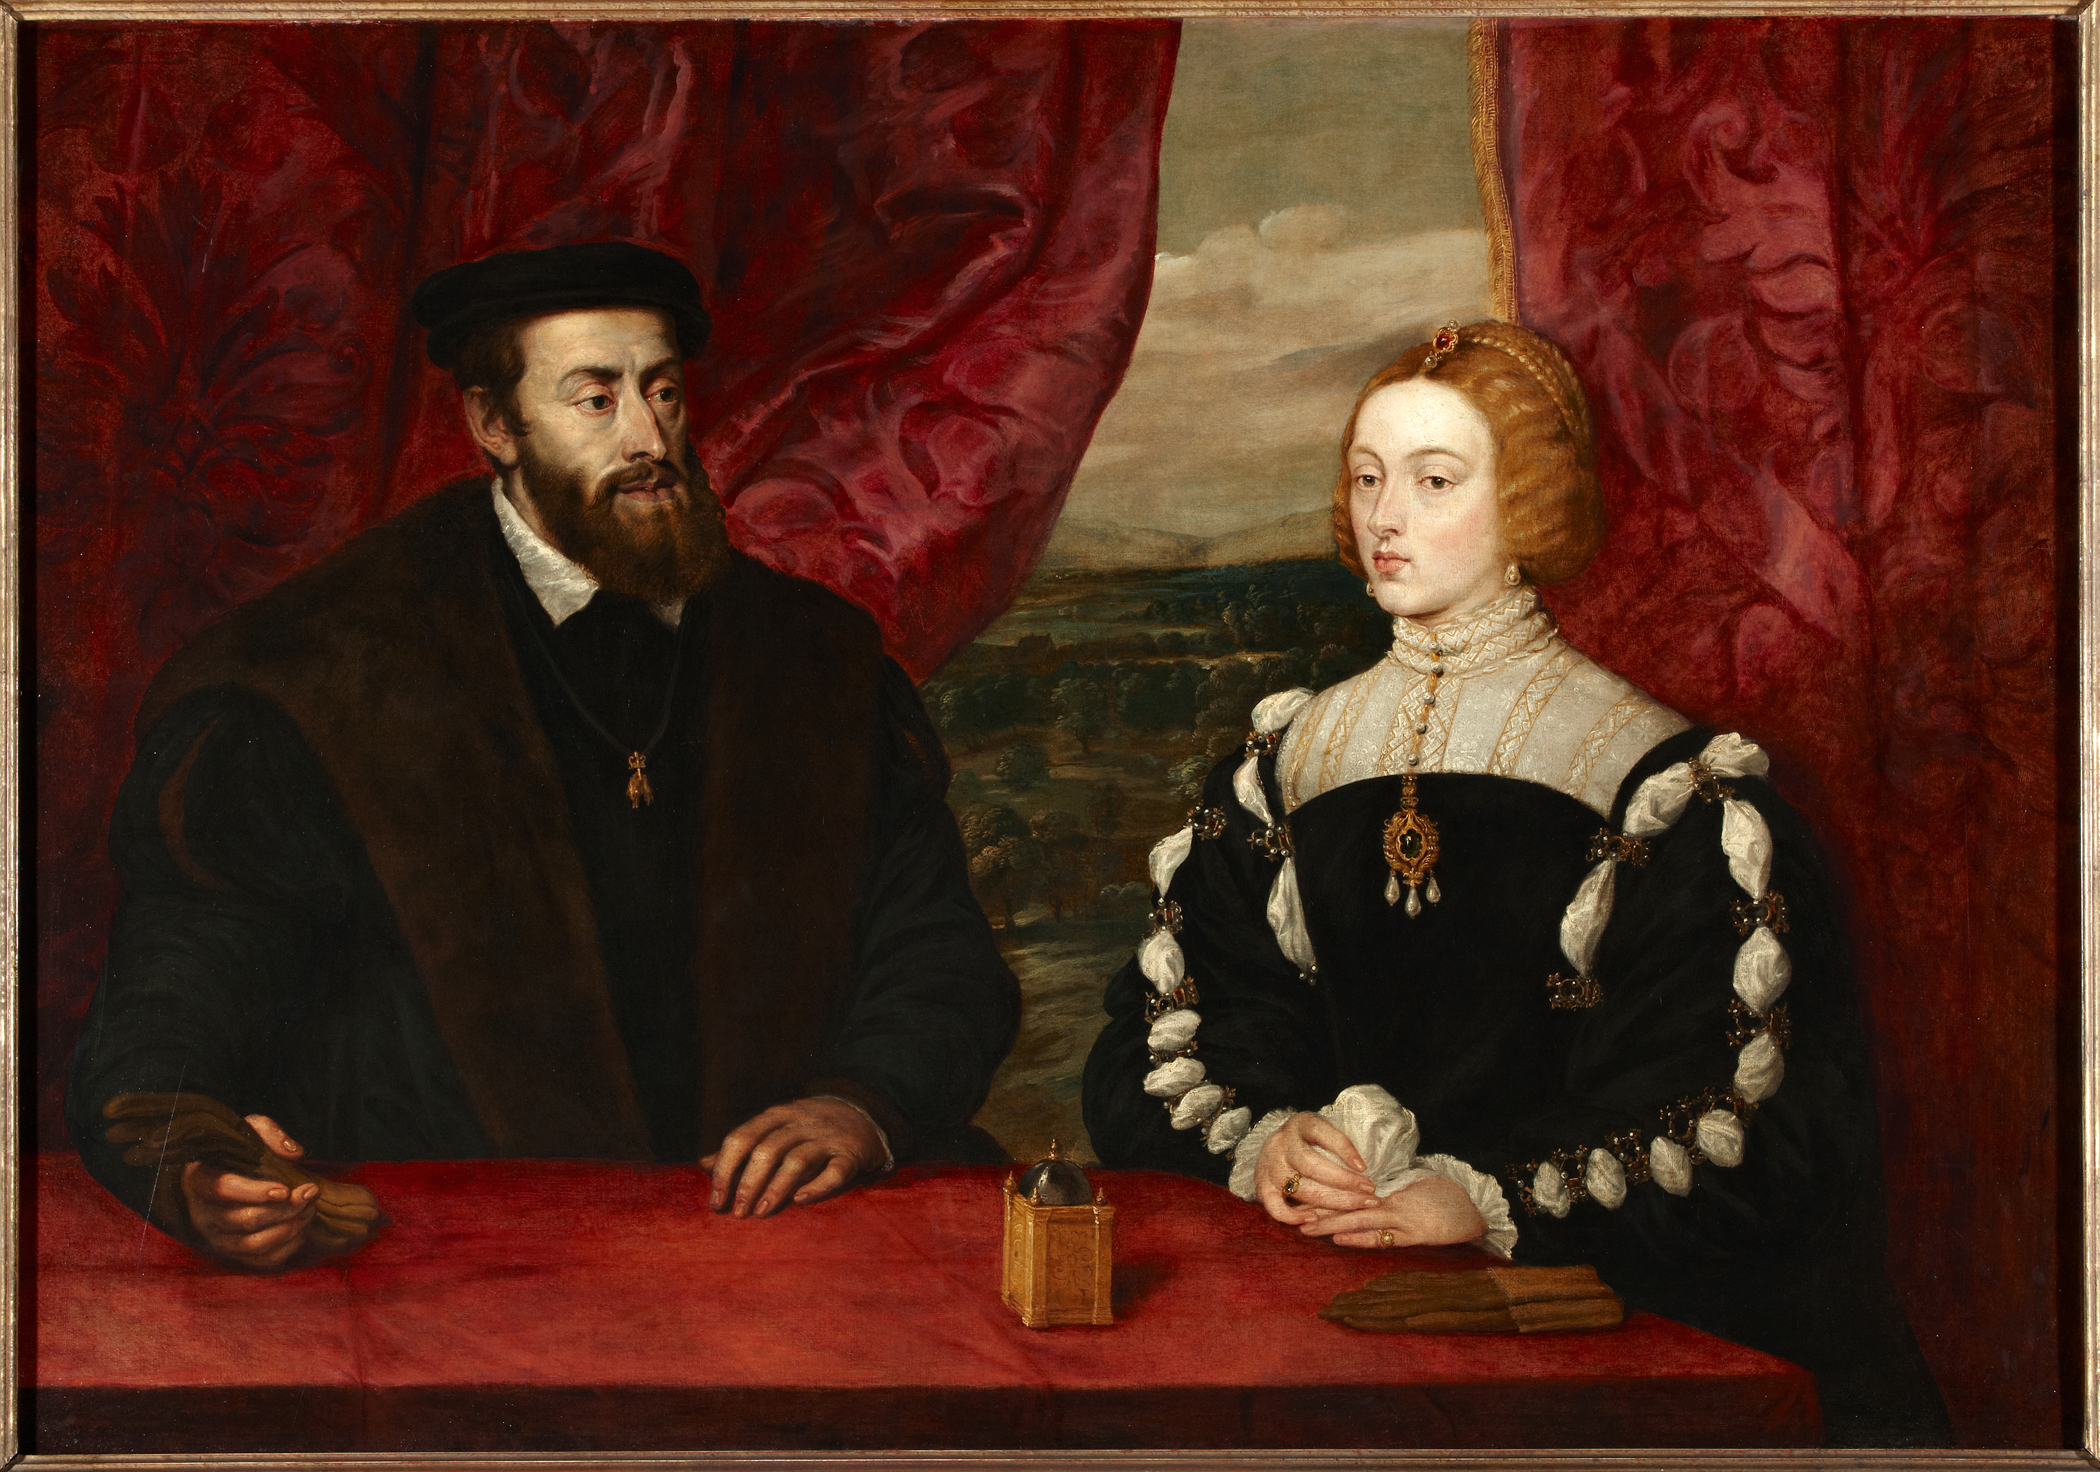 Peter Paul Rubens (Flemish, 1577-1640), Charles V and the Empress Isabella, c. 1628. Oil on canvas. Colección Duques de Alba, Palacio de Liria, Madrid.